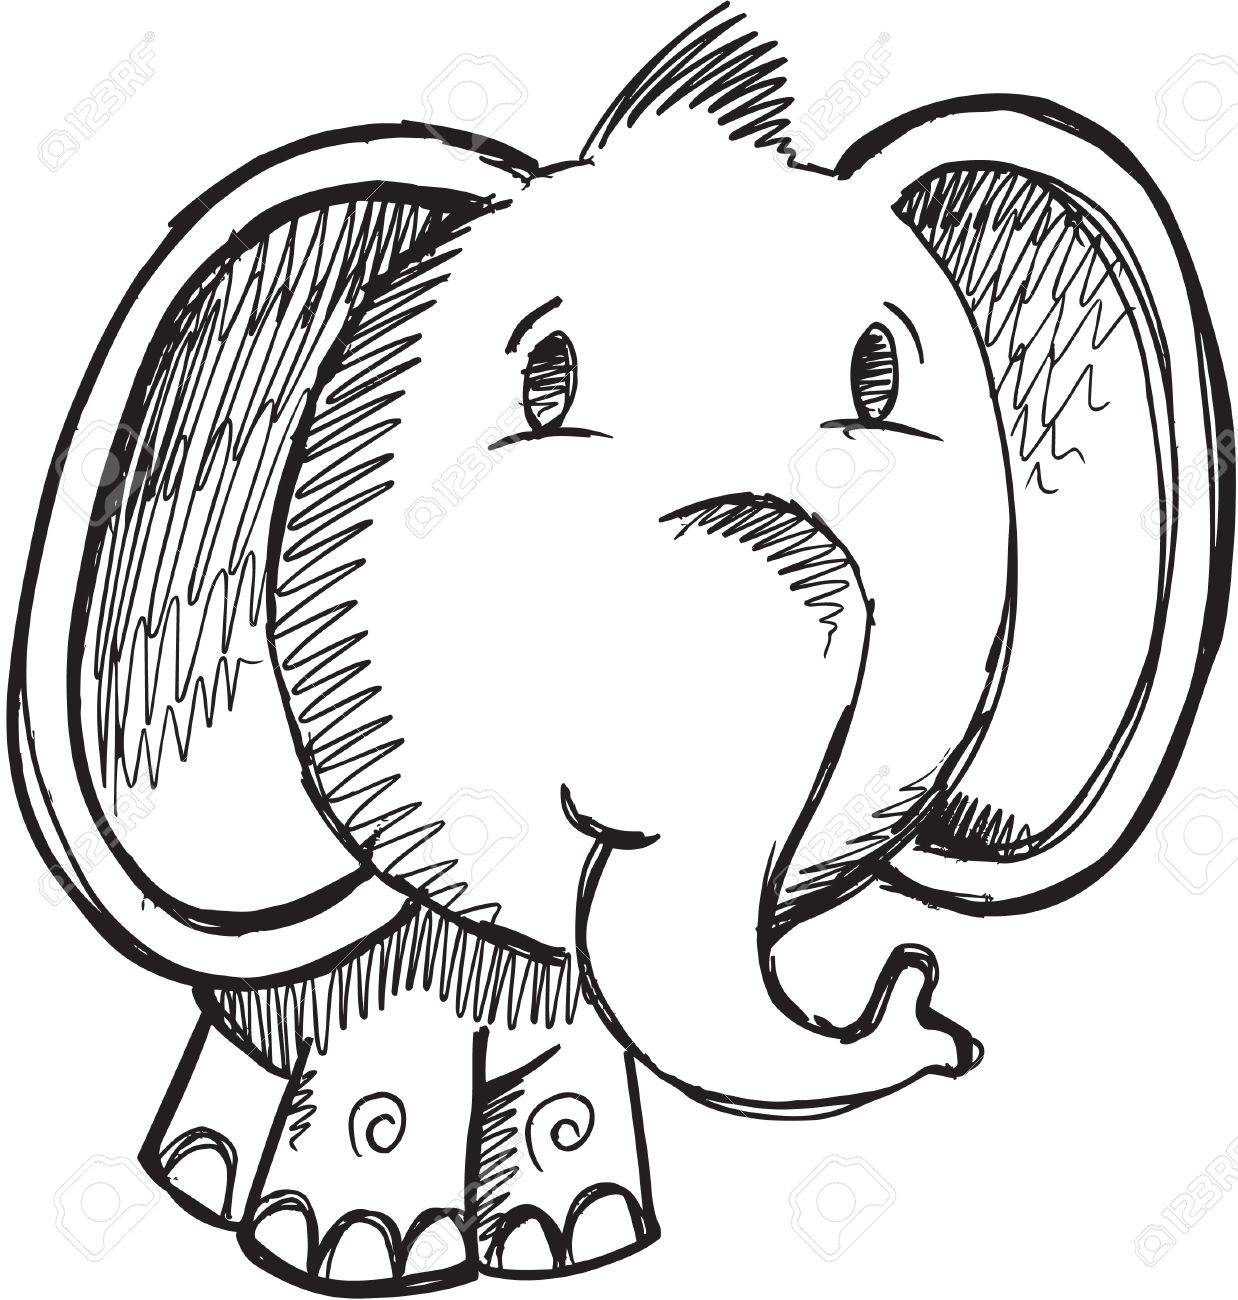 Sketch Doodle Drawing Safari Elephant Vector Illustration Stock Vector - 11655618